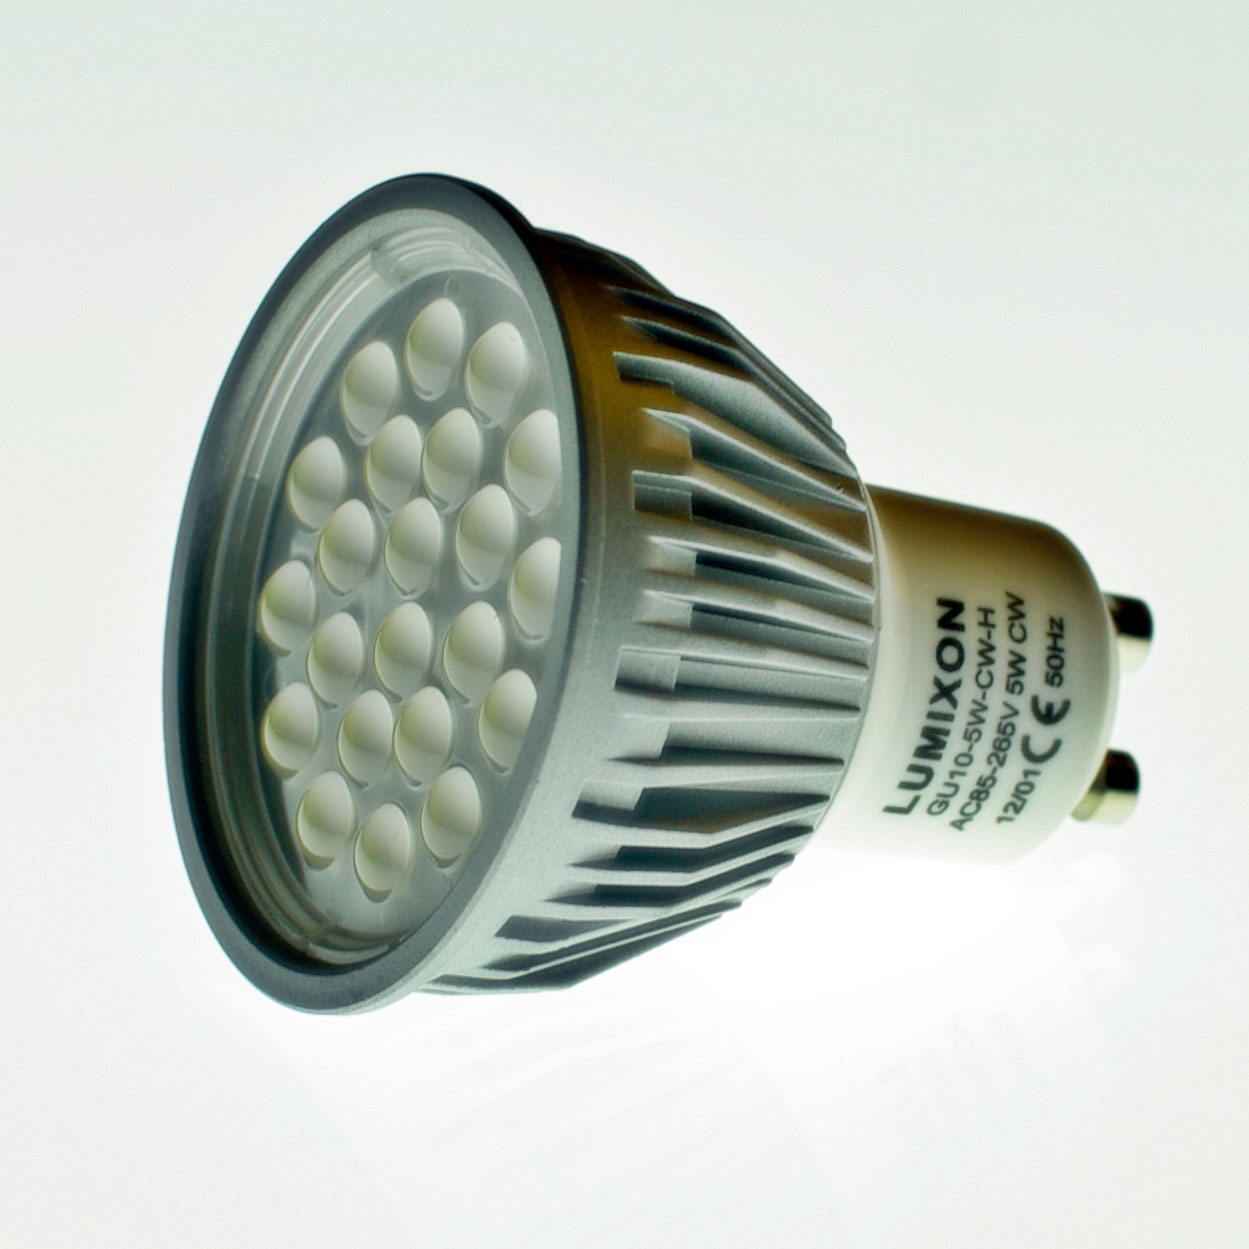 Led Lampe Kaufen Led Lampe Vs Energiesparlampe Deptis